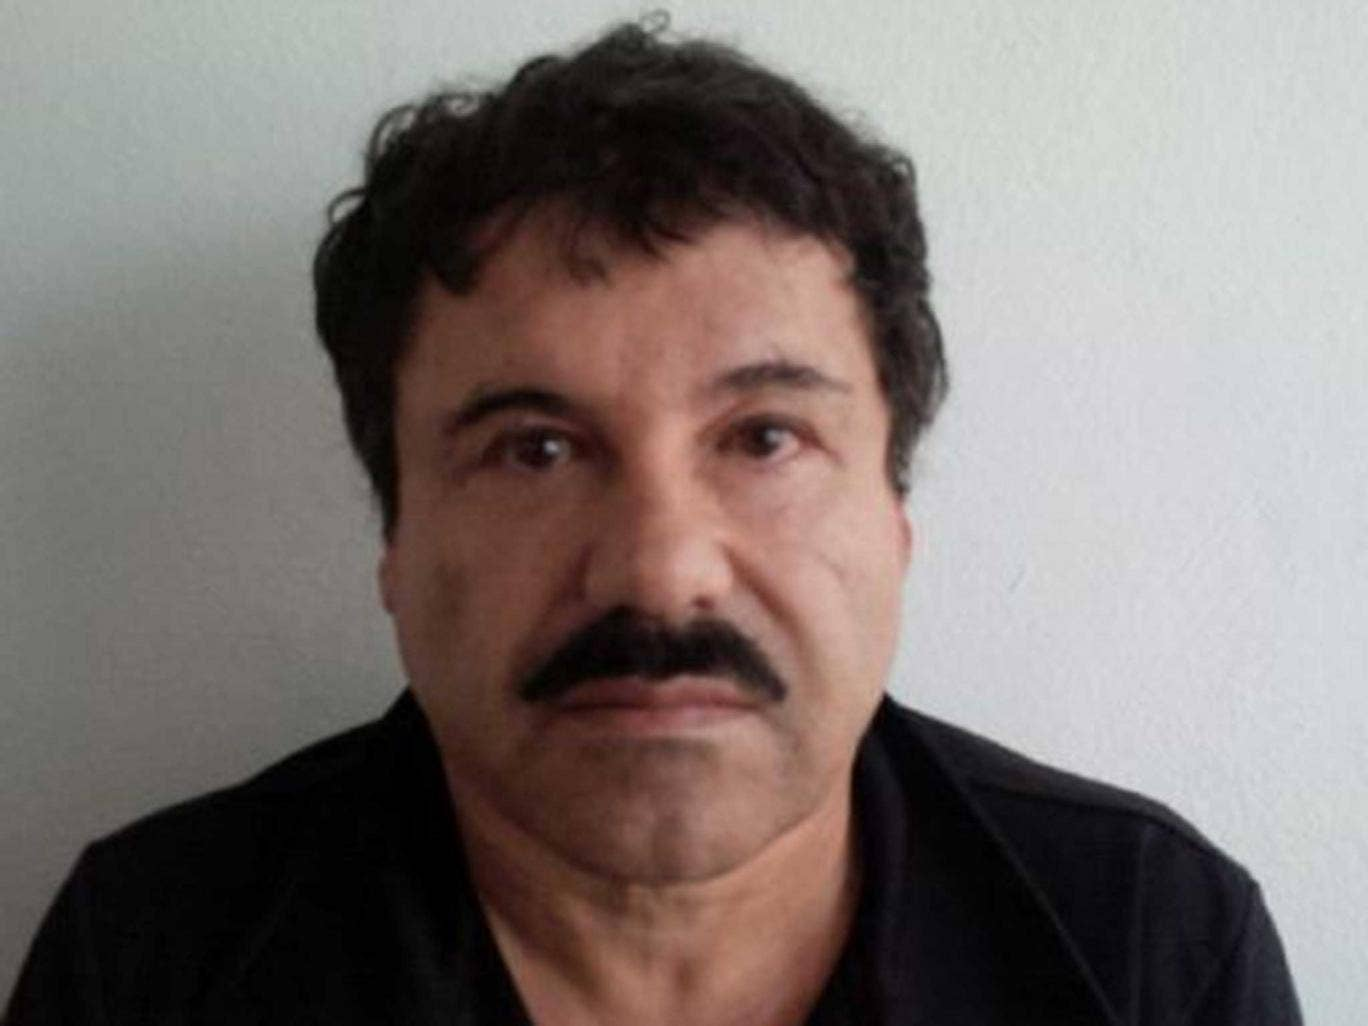 Joaquin 'El Chapo' Guzman, 57, after his capture in February this year